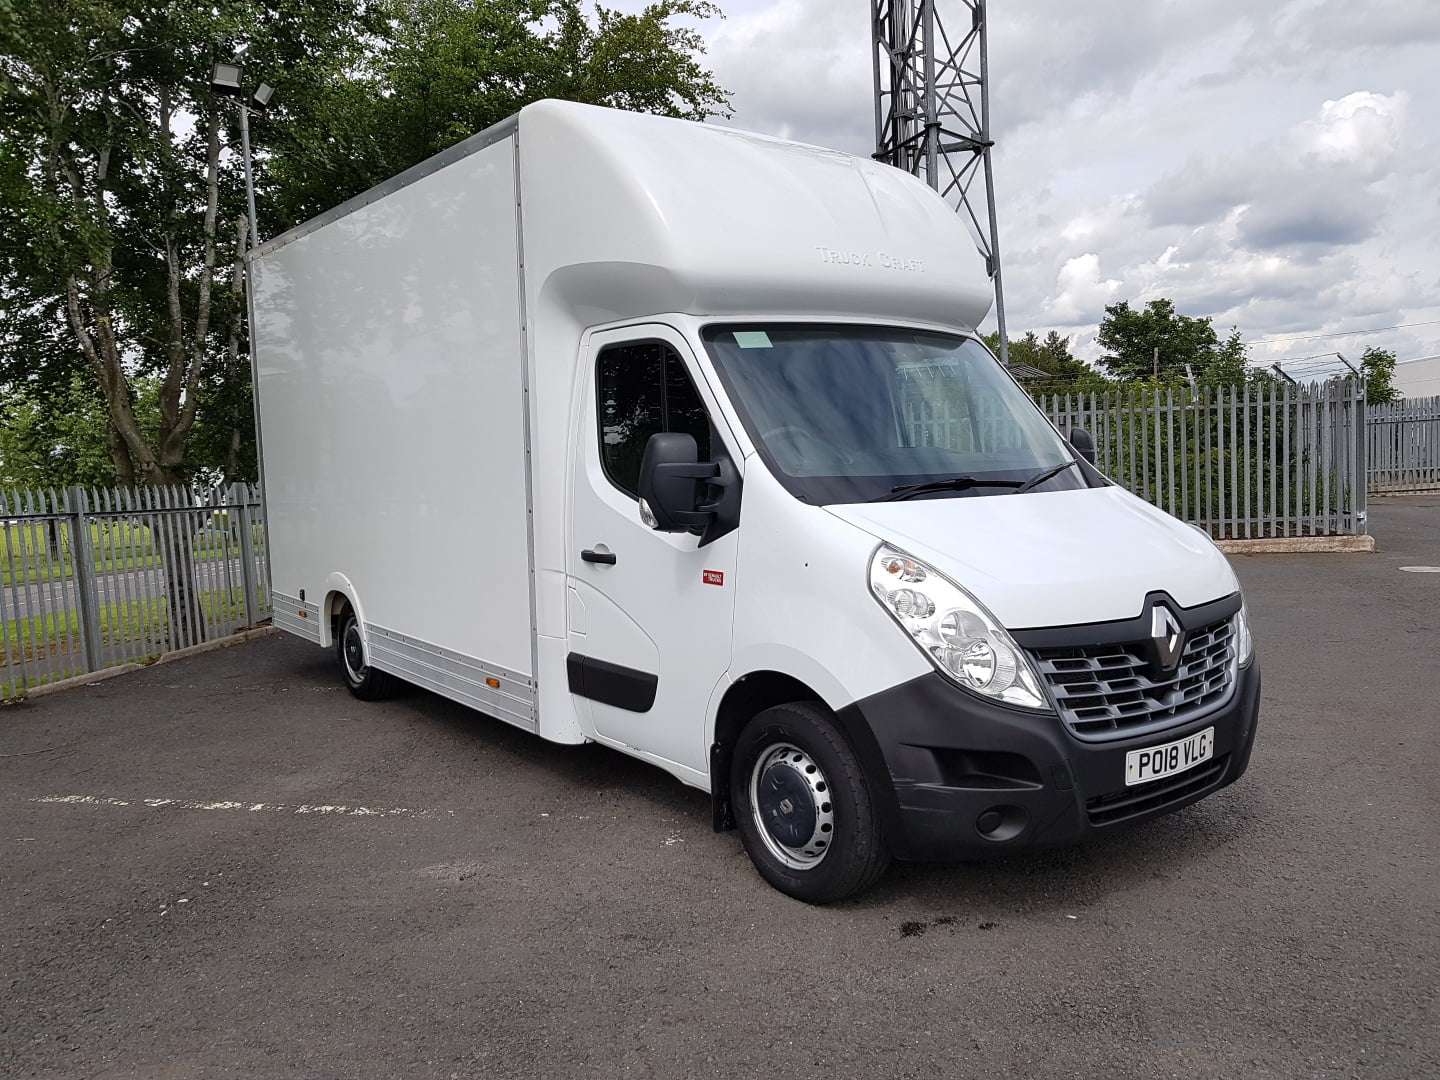 2018 Renault Master Maxi Mover, Euro 6, Manual Gearbox, 103,448 miles, Truck Craft Body, Barn Doors, 2 x Load Lock Rails, 3 Seats, 03/21 MOT, Choice Available.